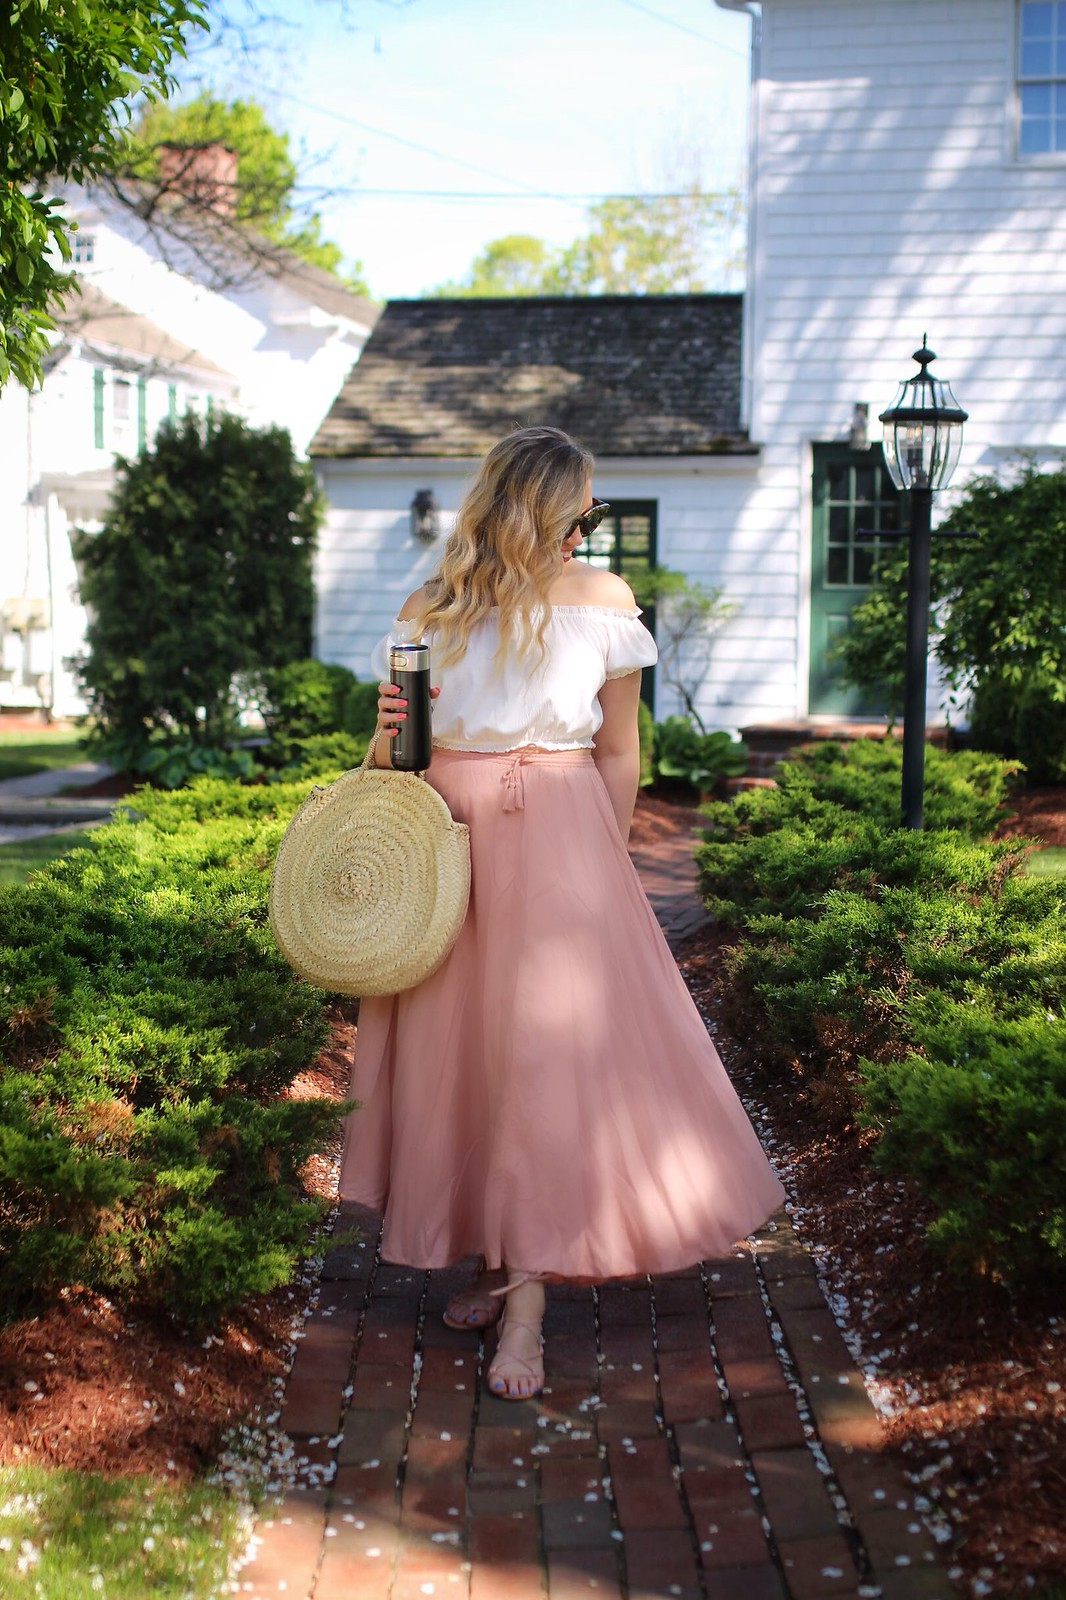 Spring Country Outfit H&M White Crop Top O'Neill Pink Maxi Skirt Straw Bag